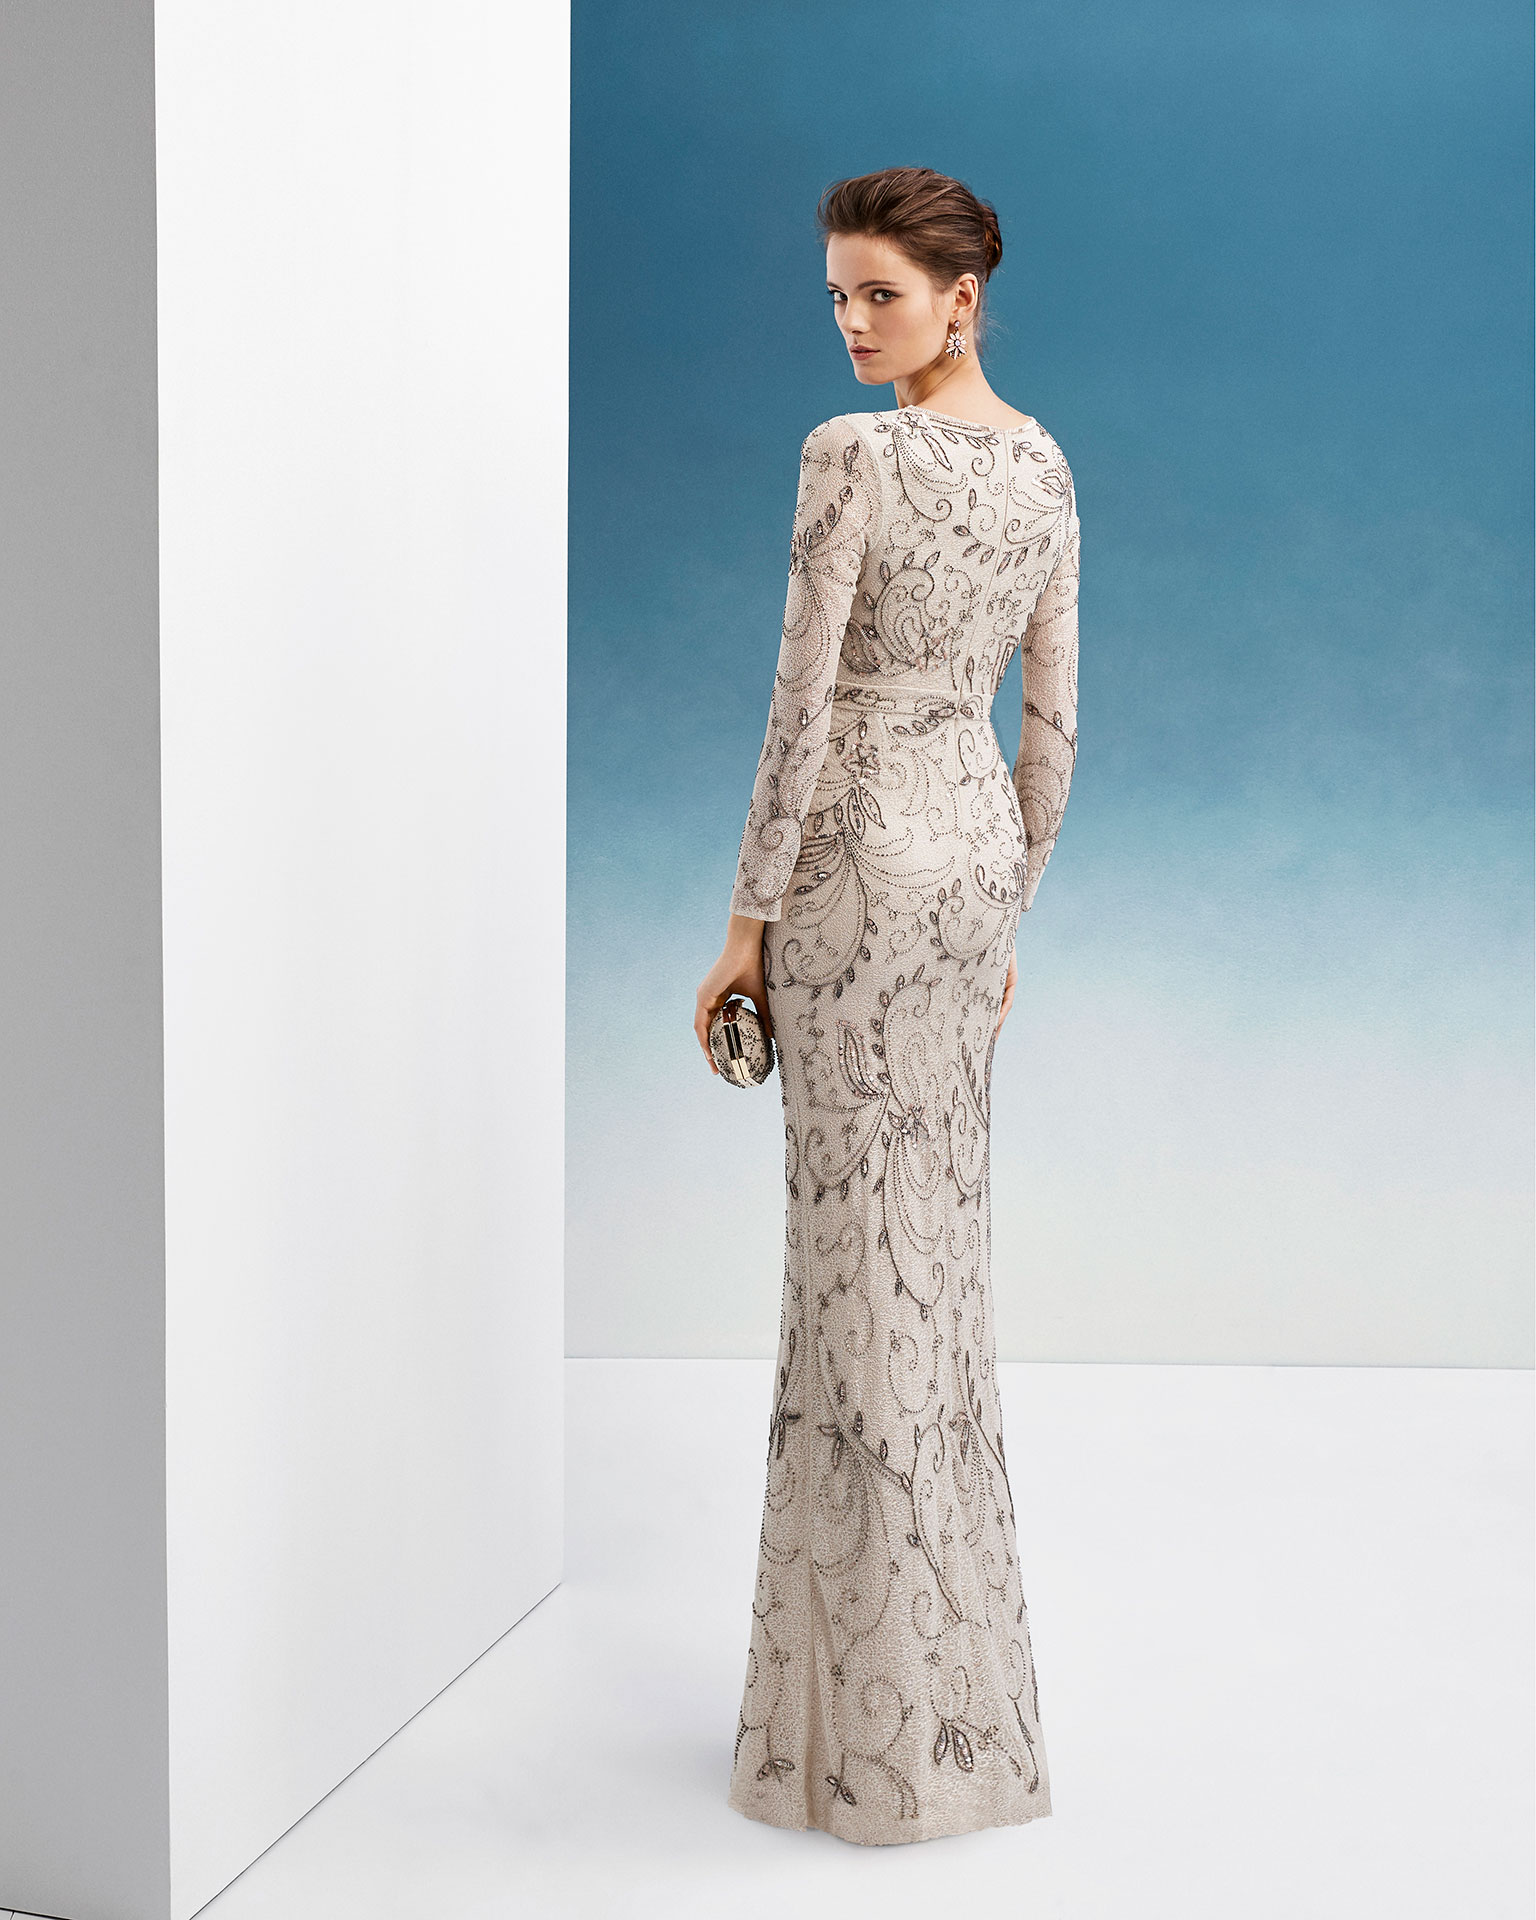 Beaded cocktail dress. With V-neckline, long sleeves and skirt with front slit. 2019 FIESTA AIRE BARCELONA Collection.